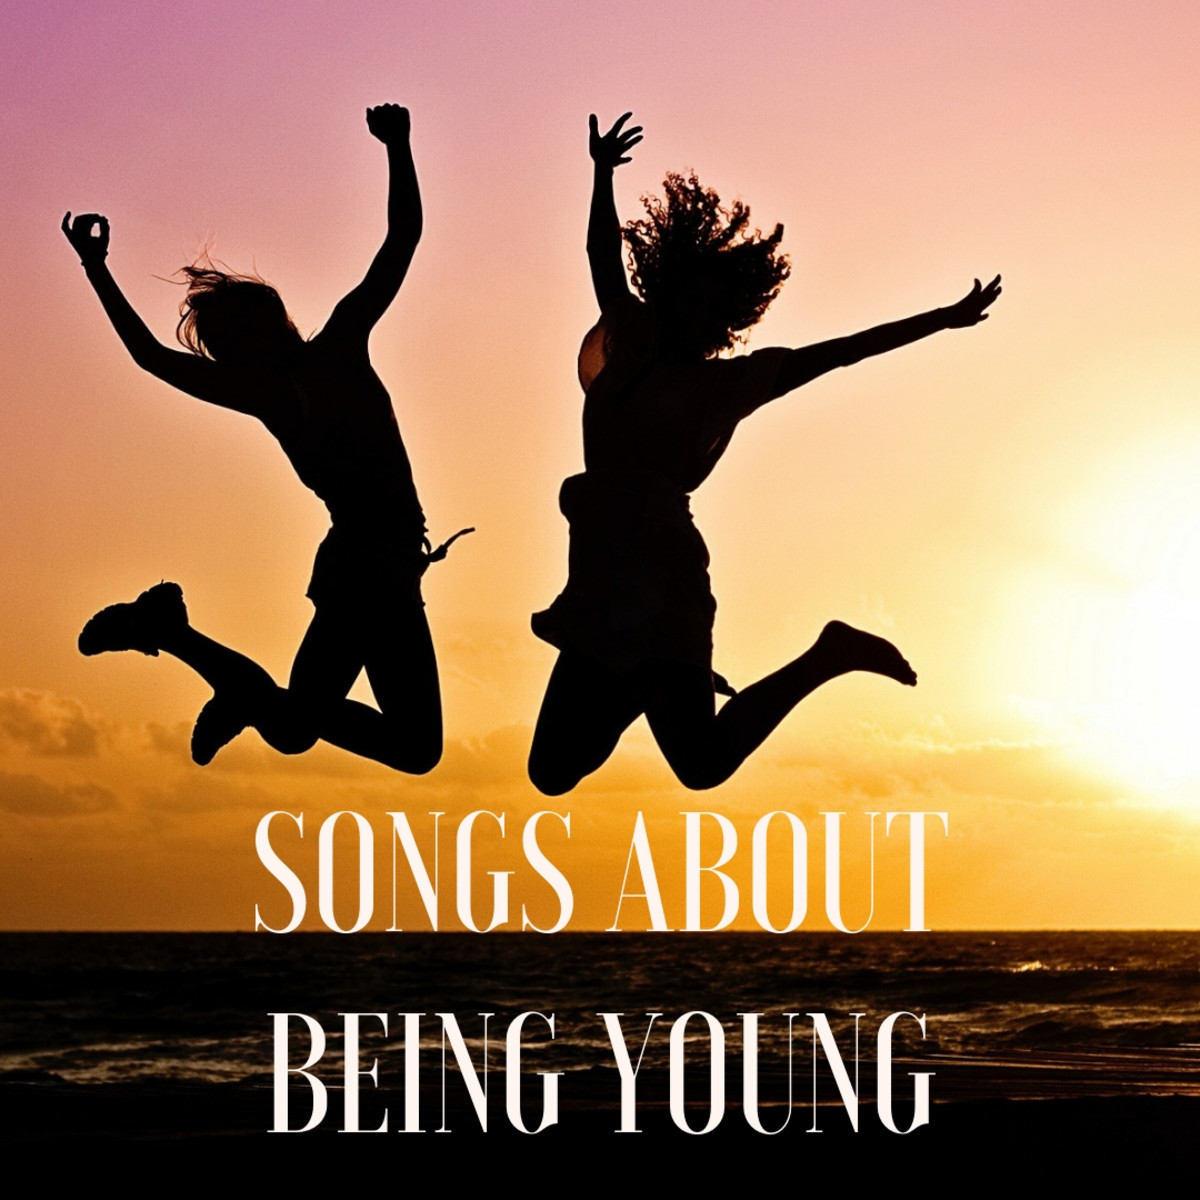 82 Songs About Being Young